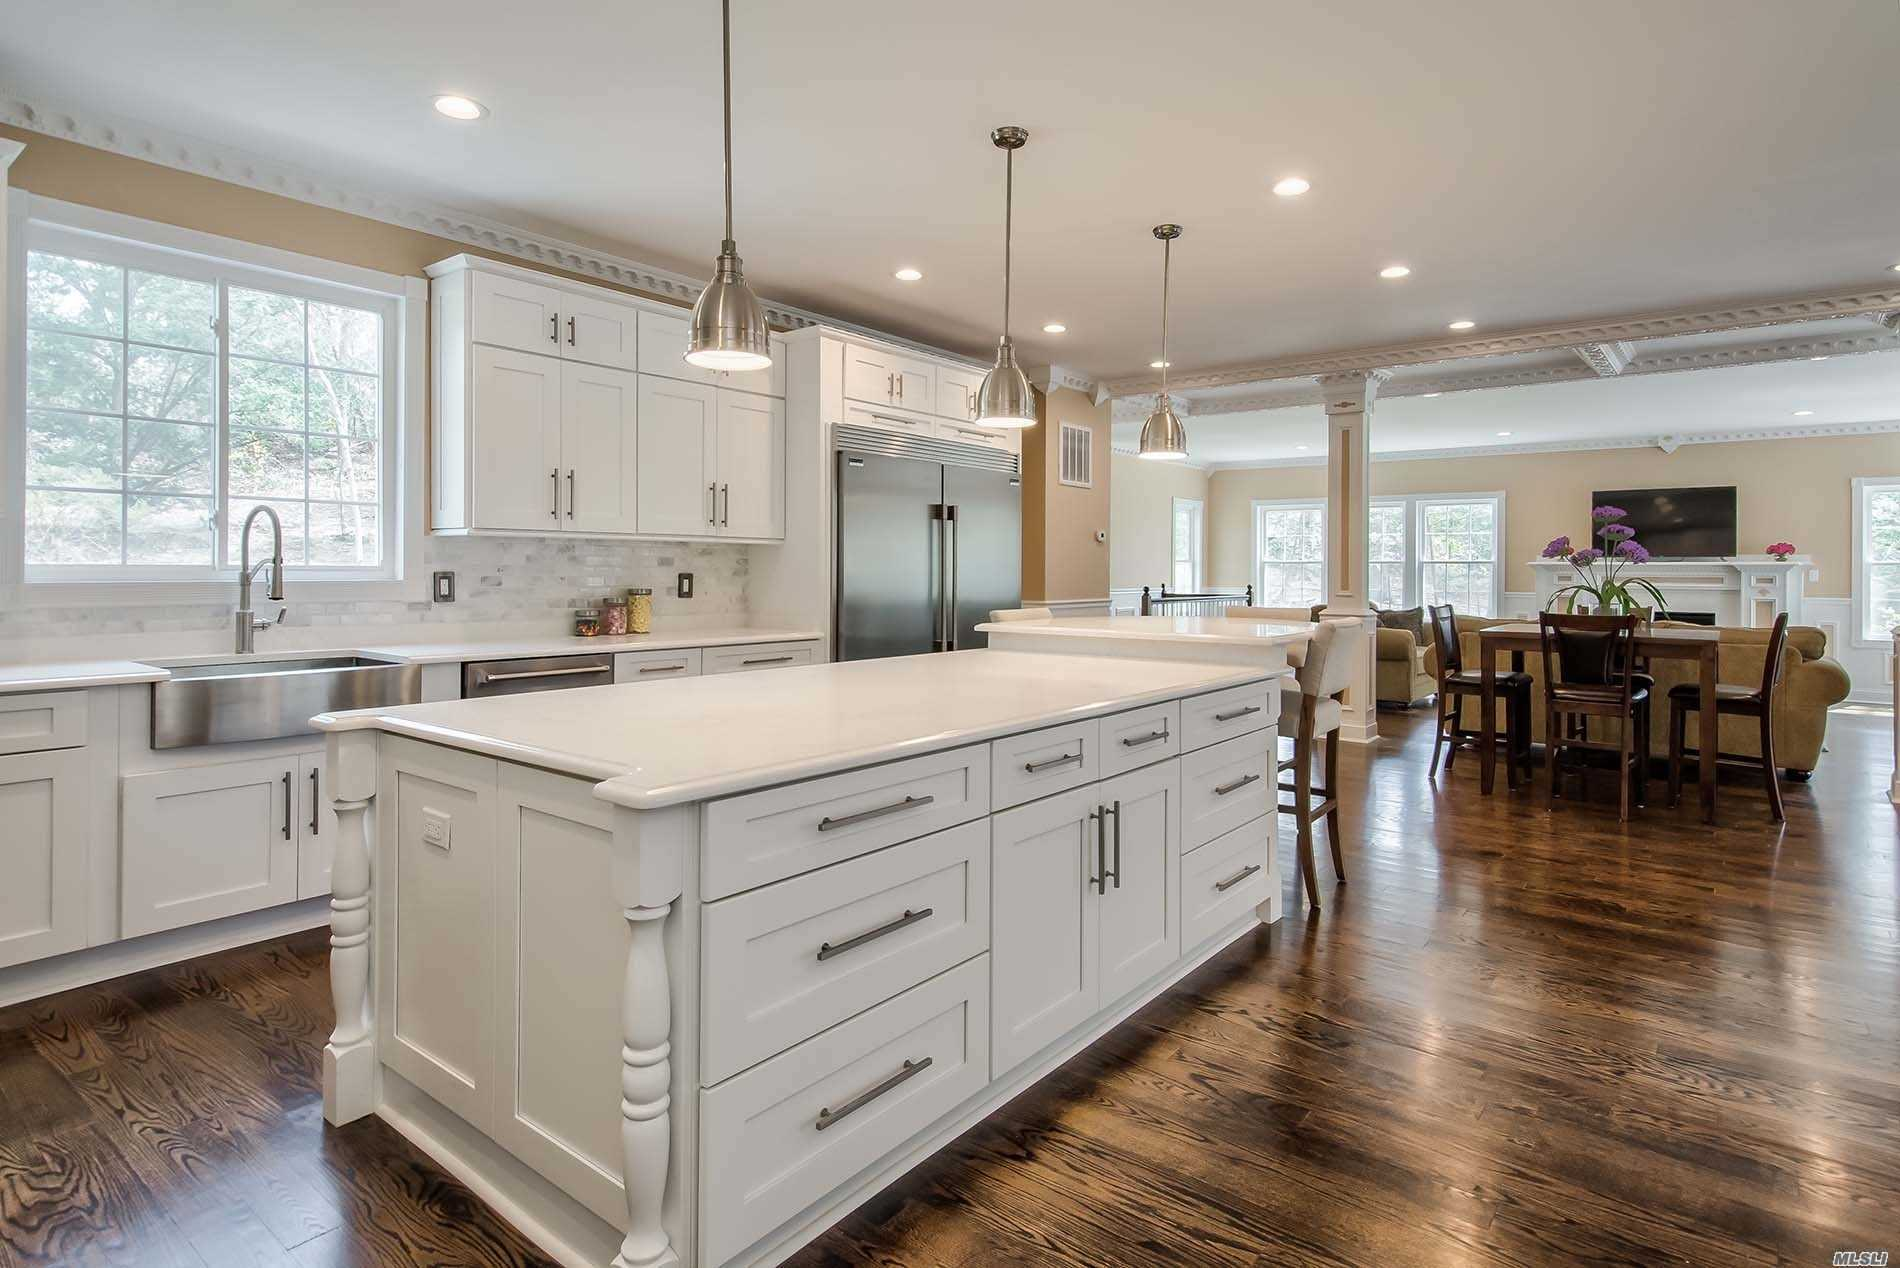 Exquisite New Construction Featuring 5 Bedrooms & 5.5 Designer Baths, 5000+ Sq Ft, On 1 Acre In One Of The Most Sought After Neighborhoods In The Famed Syosset School District.Custom Designed W/The Finest Finishes, Fabulous For Entertaining With An Open Floor Plan, Great Rm W/Fpl, Stunning Kitchen, Breakfast Rm, Formal Dining & Living Rms, Master Suite W/2 Walk-In-Closets.Finished Bsmnt W/Ose.Private & Tranquil Backyard Setting W/Trex Decking & Inground Pool.Some Rooms Virtually Staged.